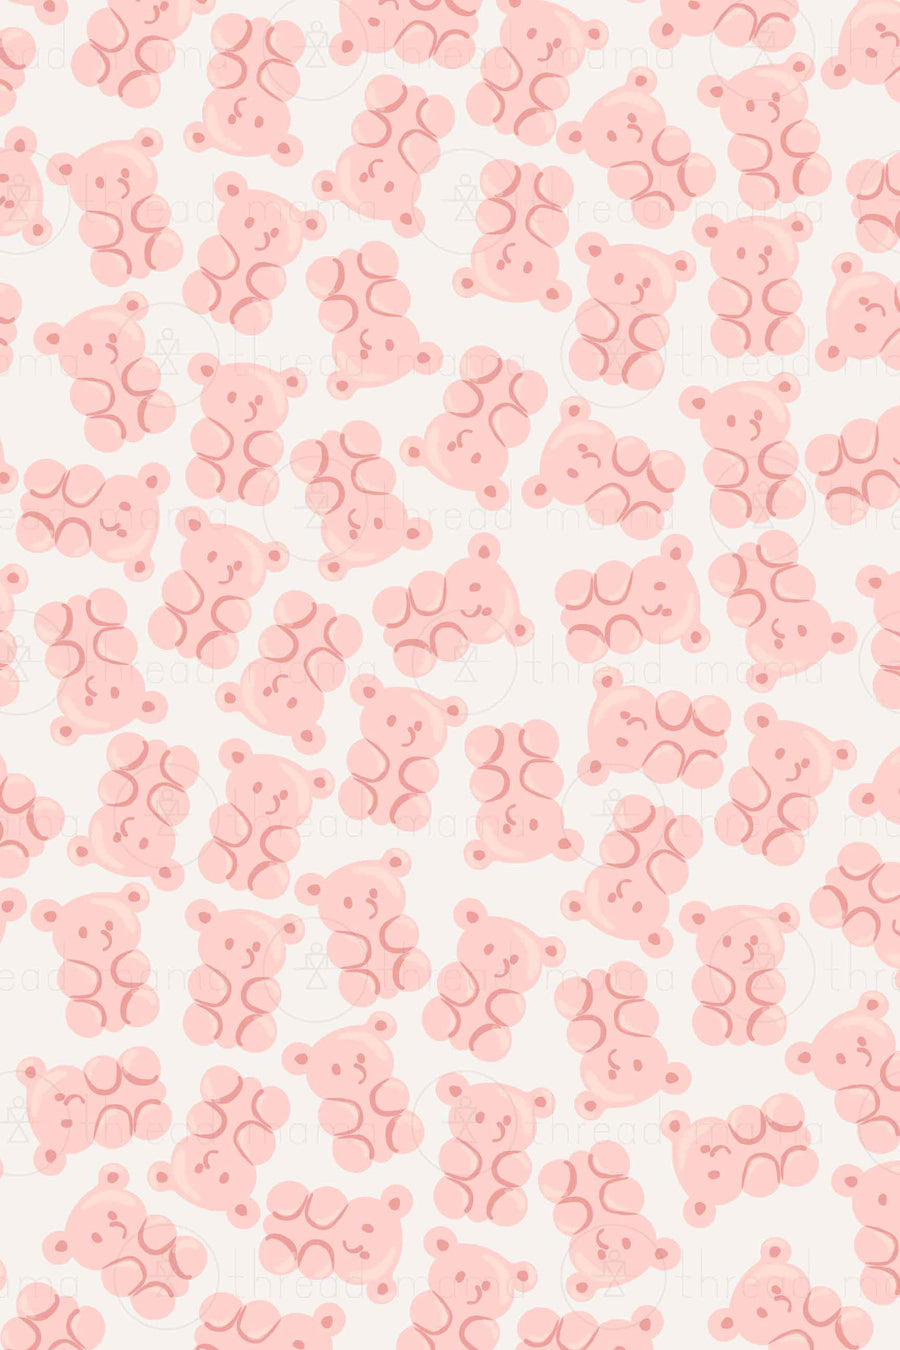 Repeating Pattern 56 (Seamless)